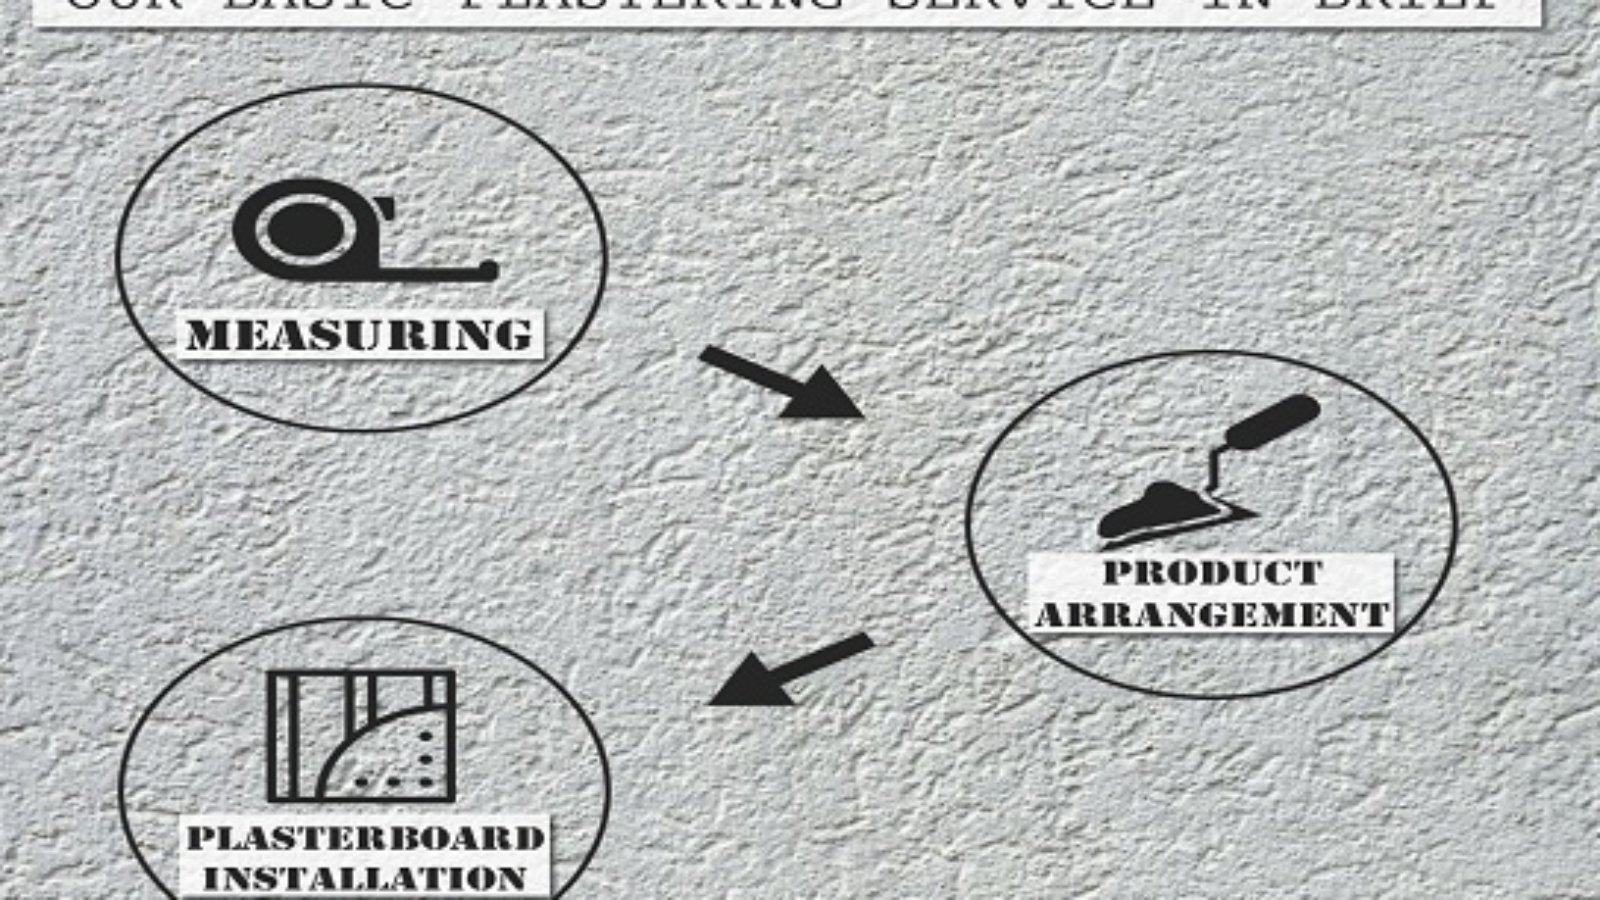 Infographic-A-simple-and-fun-way-to-know-our-plastering-work-in-brief-1